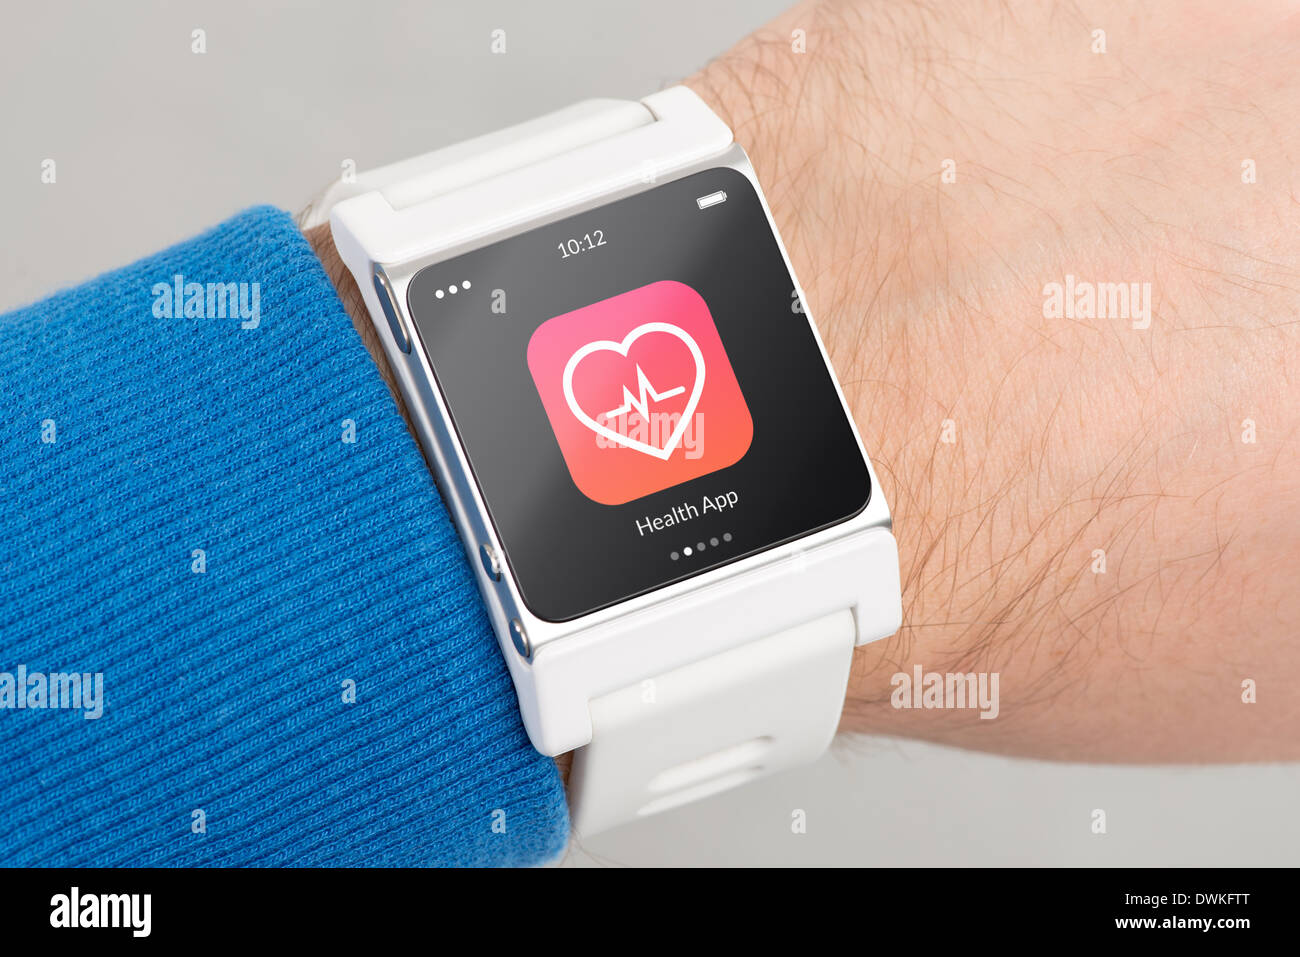 Close up white smart watch with health app icon on the screen is on hand - Stock Image